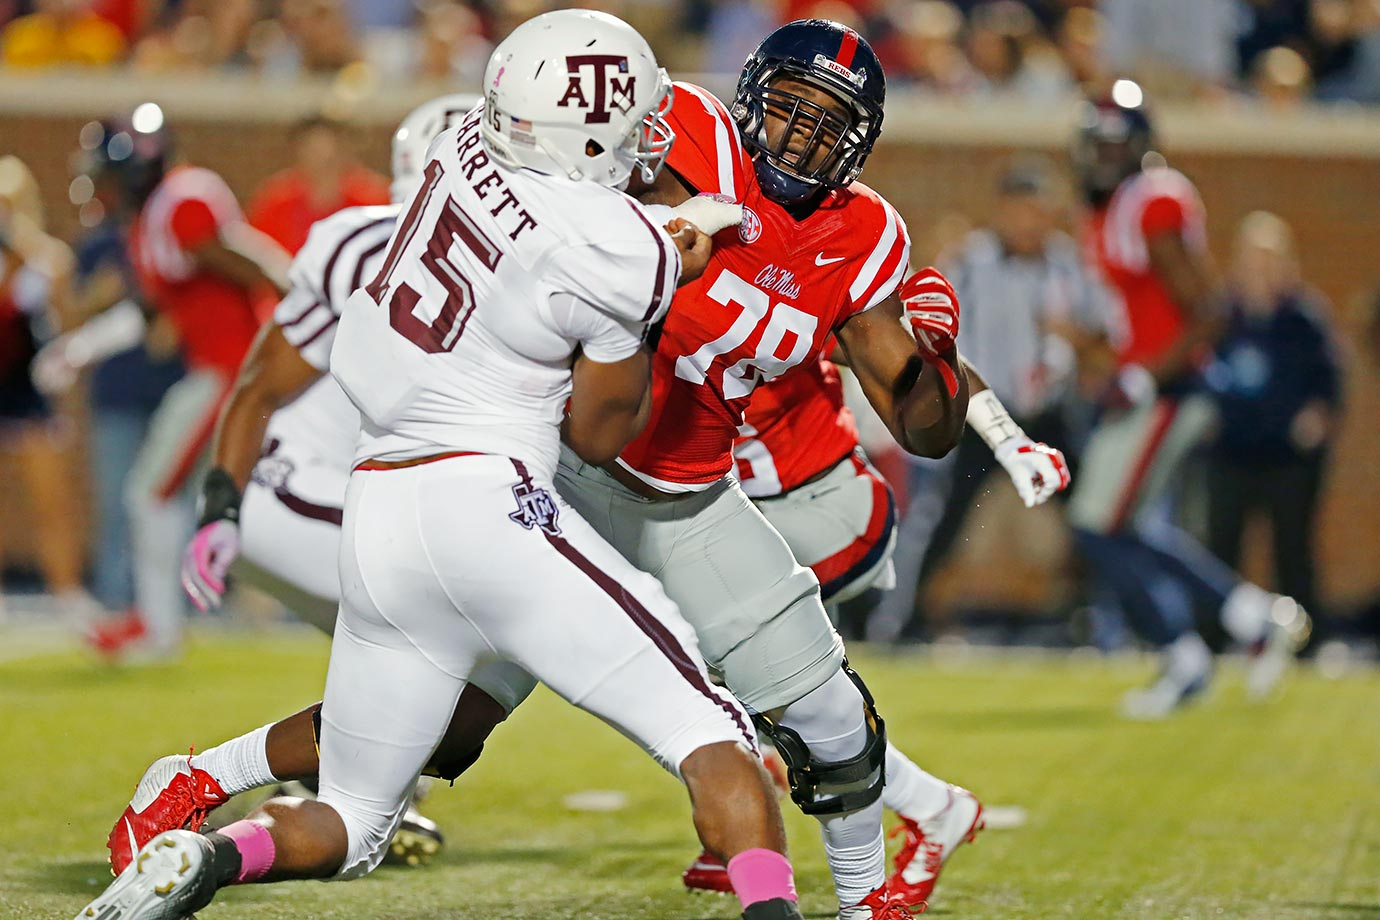 Tunsil sat out the first seven games of 2015 as the NCAA investigated alleged dealings with an agent. He stepped right back into the lineup in the Rebels' game against Texas A&M and excelled against likely 2017 top prospect Myles Garrett. The Ole Miss product plays with a little more punch than Stanley. The preference here still is Stanley by the slimmest of margins, but both prospects have the look of future All-Pros.